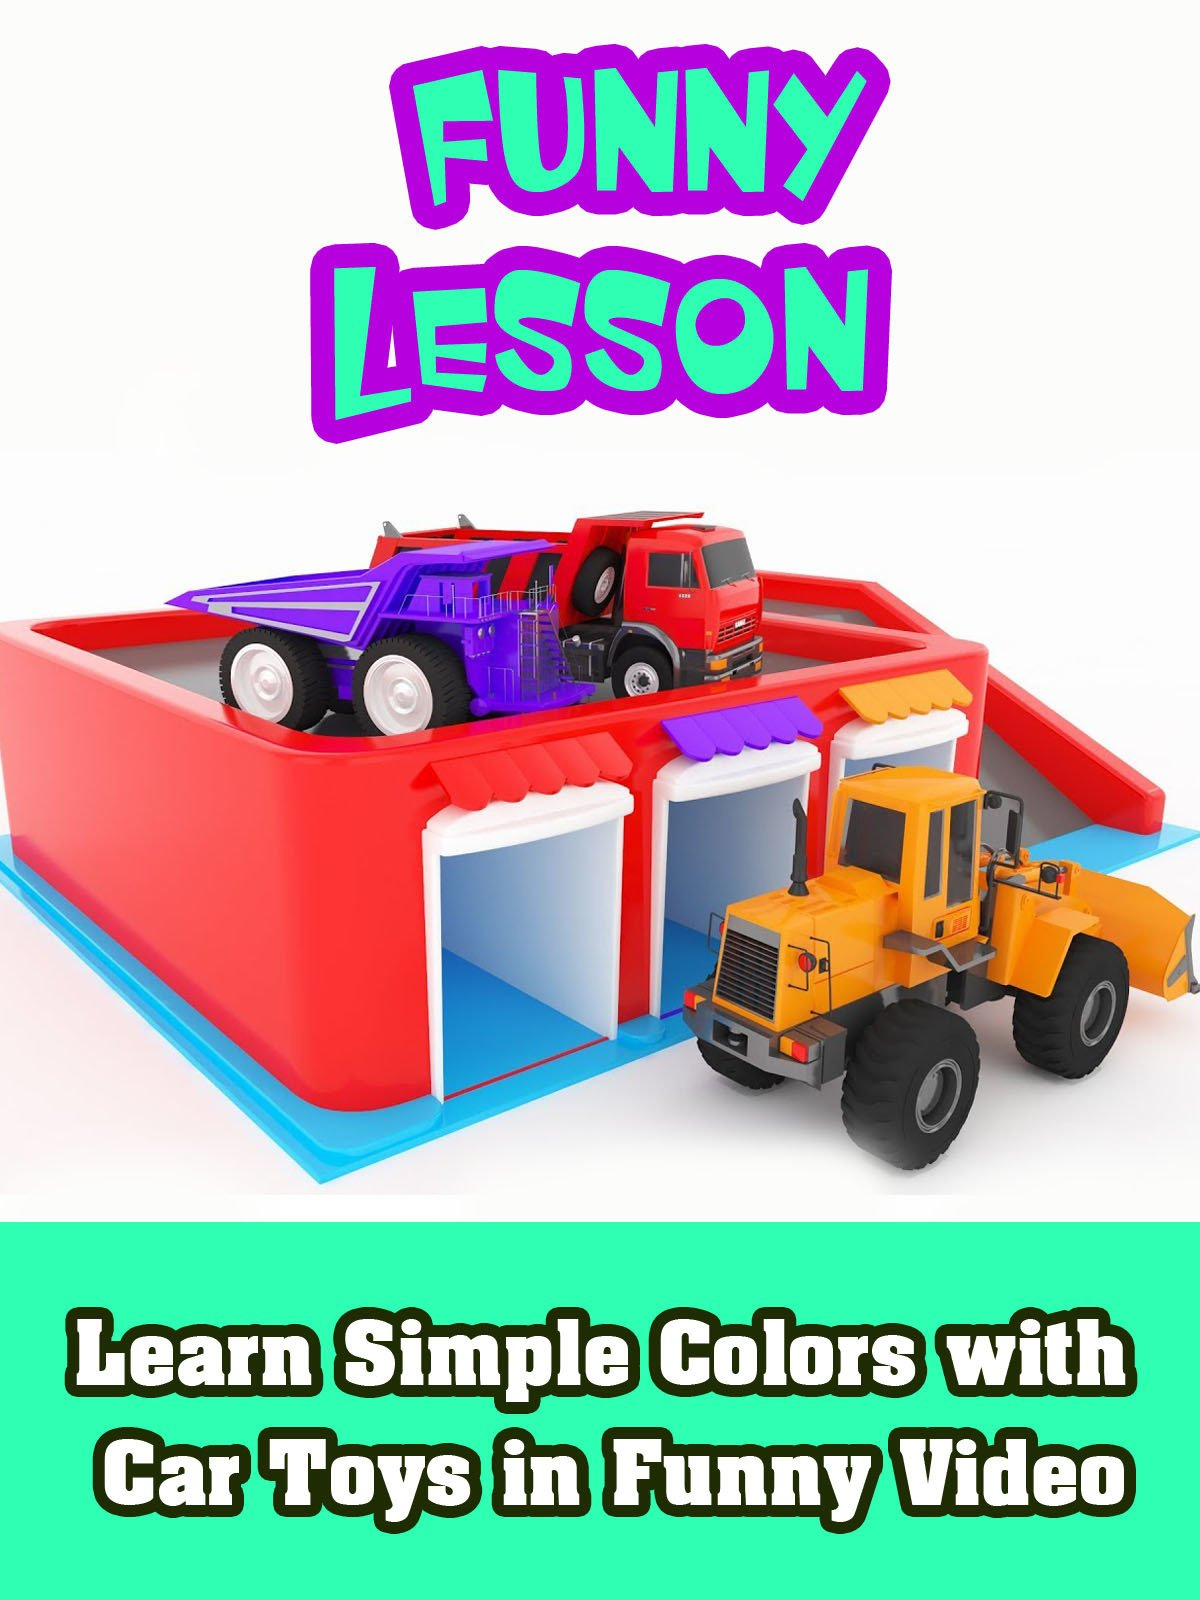 Learn Simple Colors with Car Toys in Funny Video